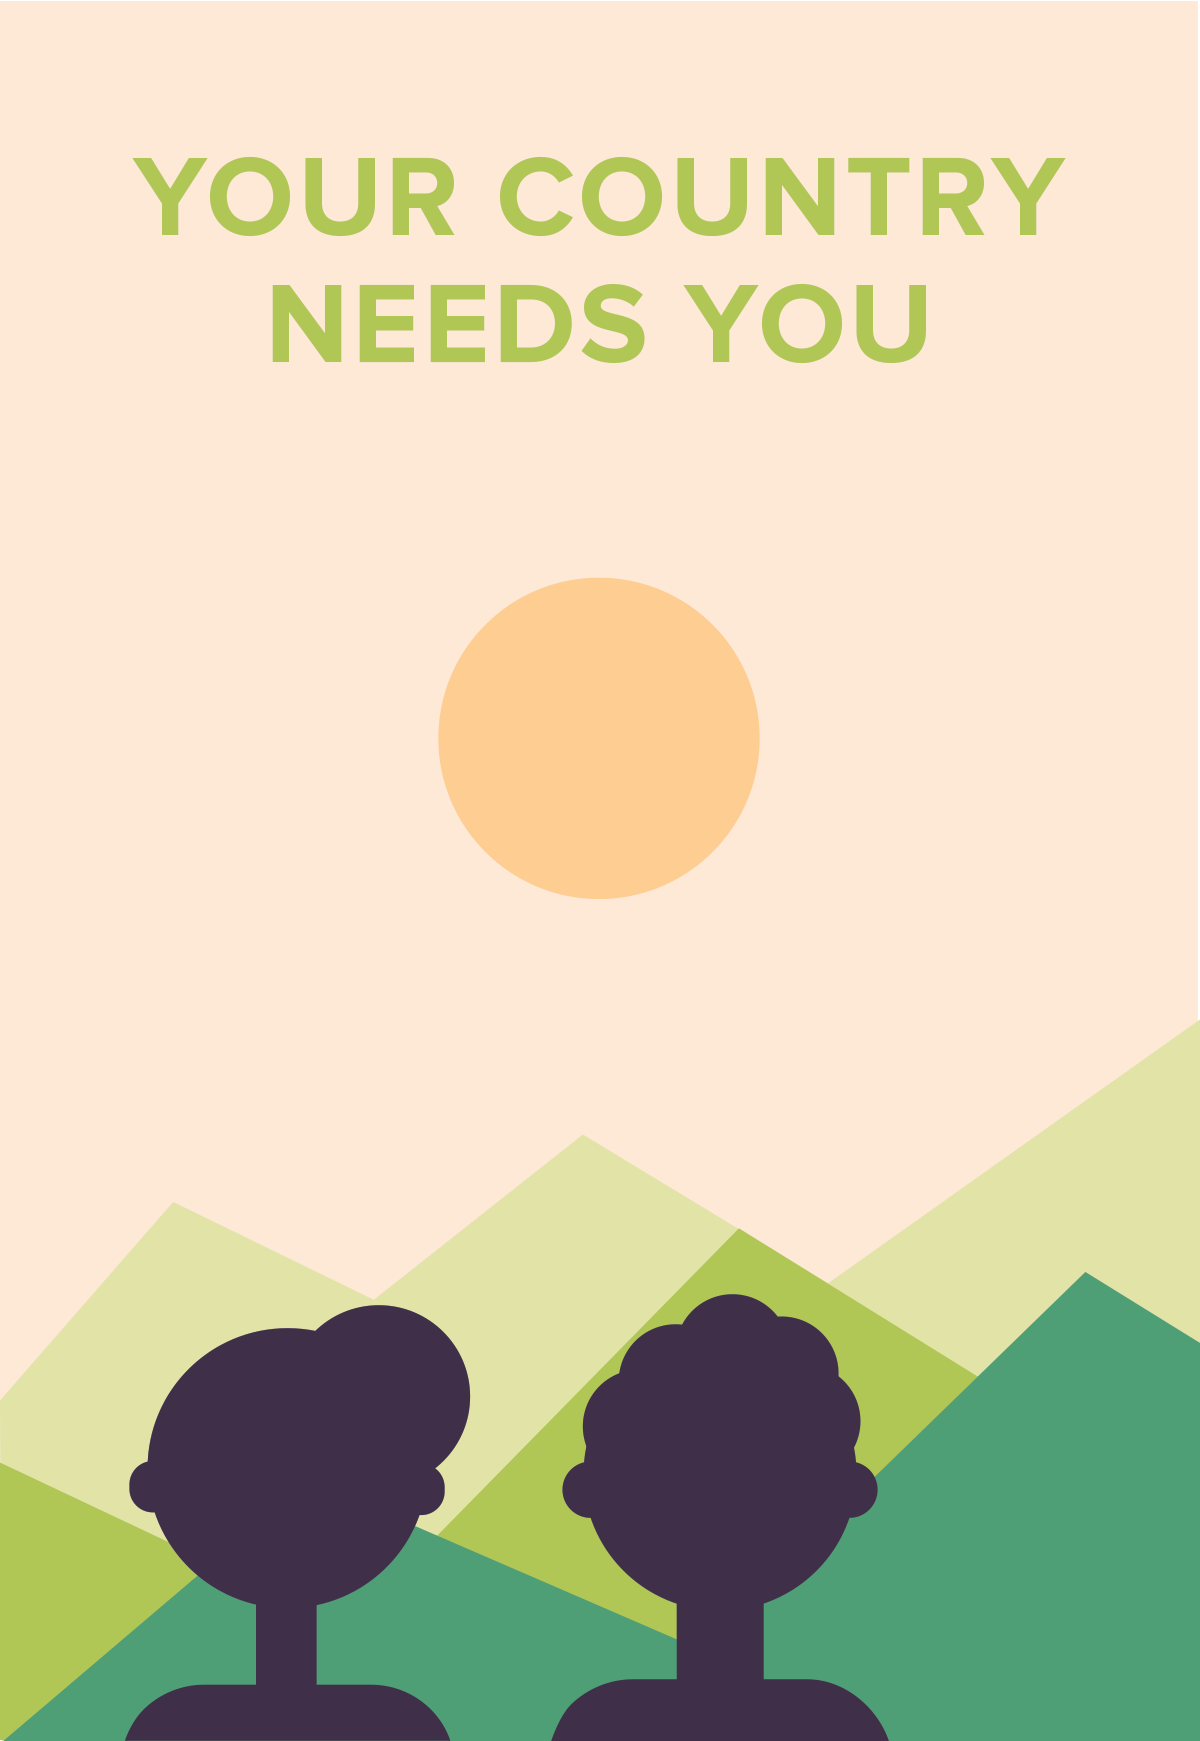 Your Country Needs You - Green Hills